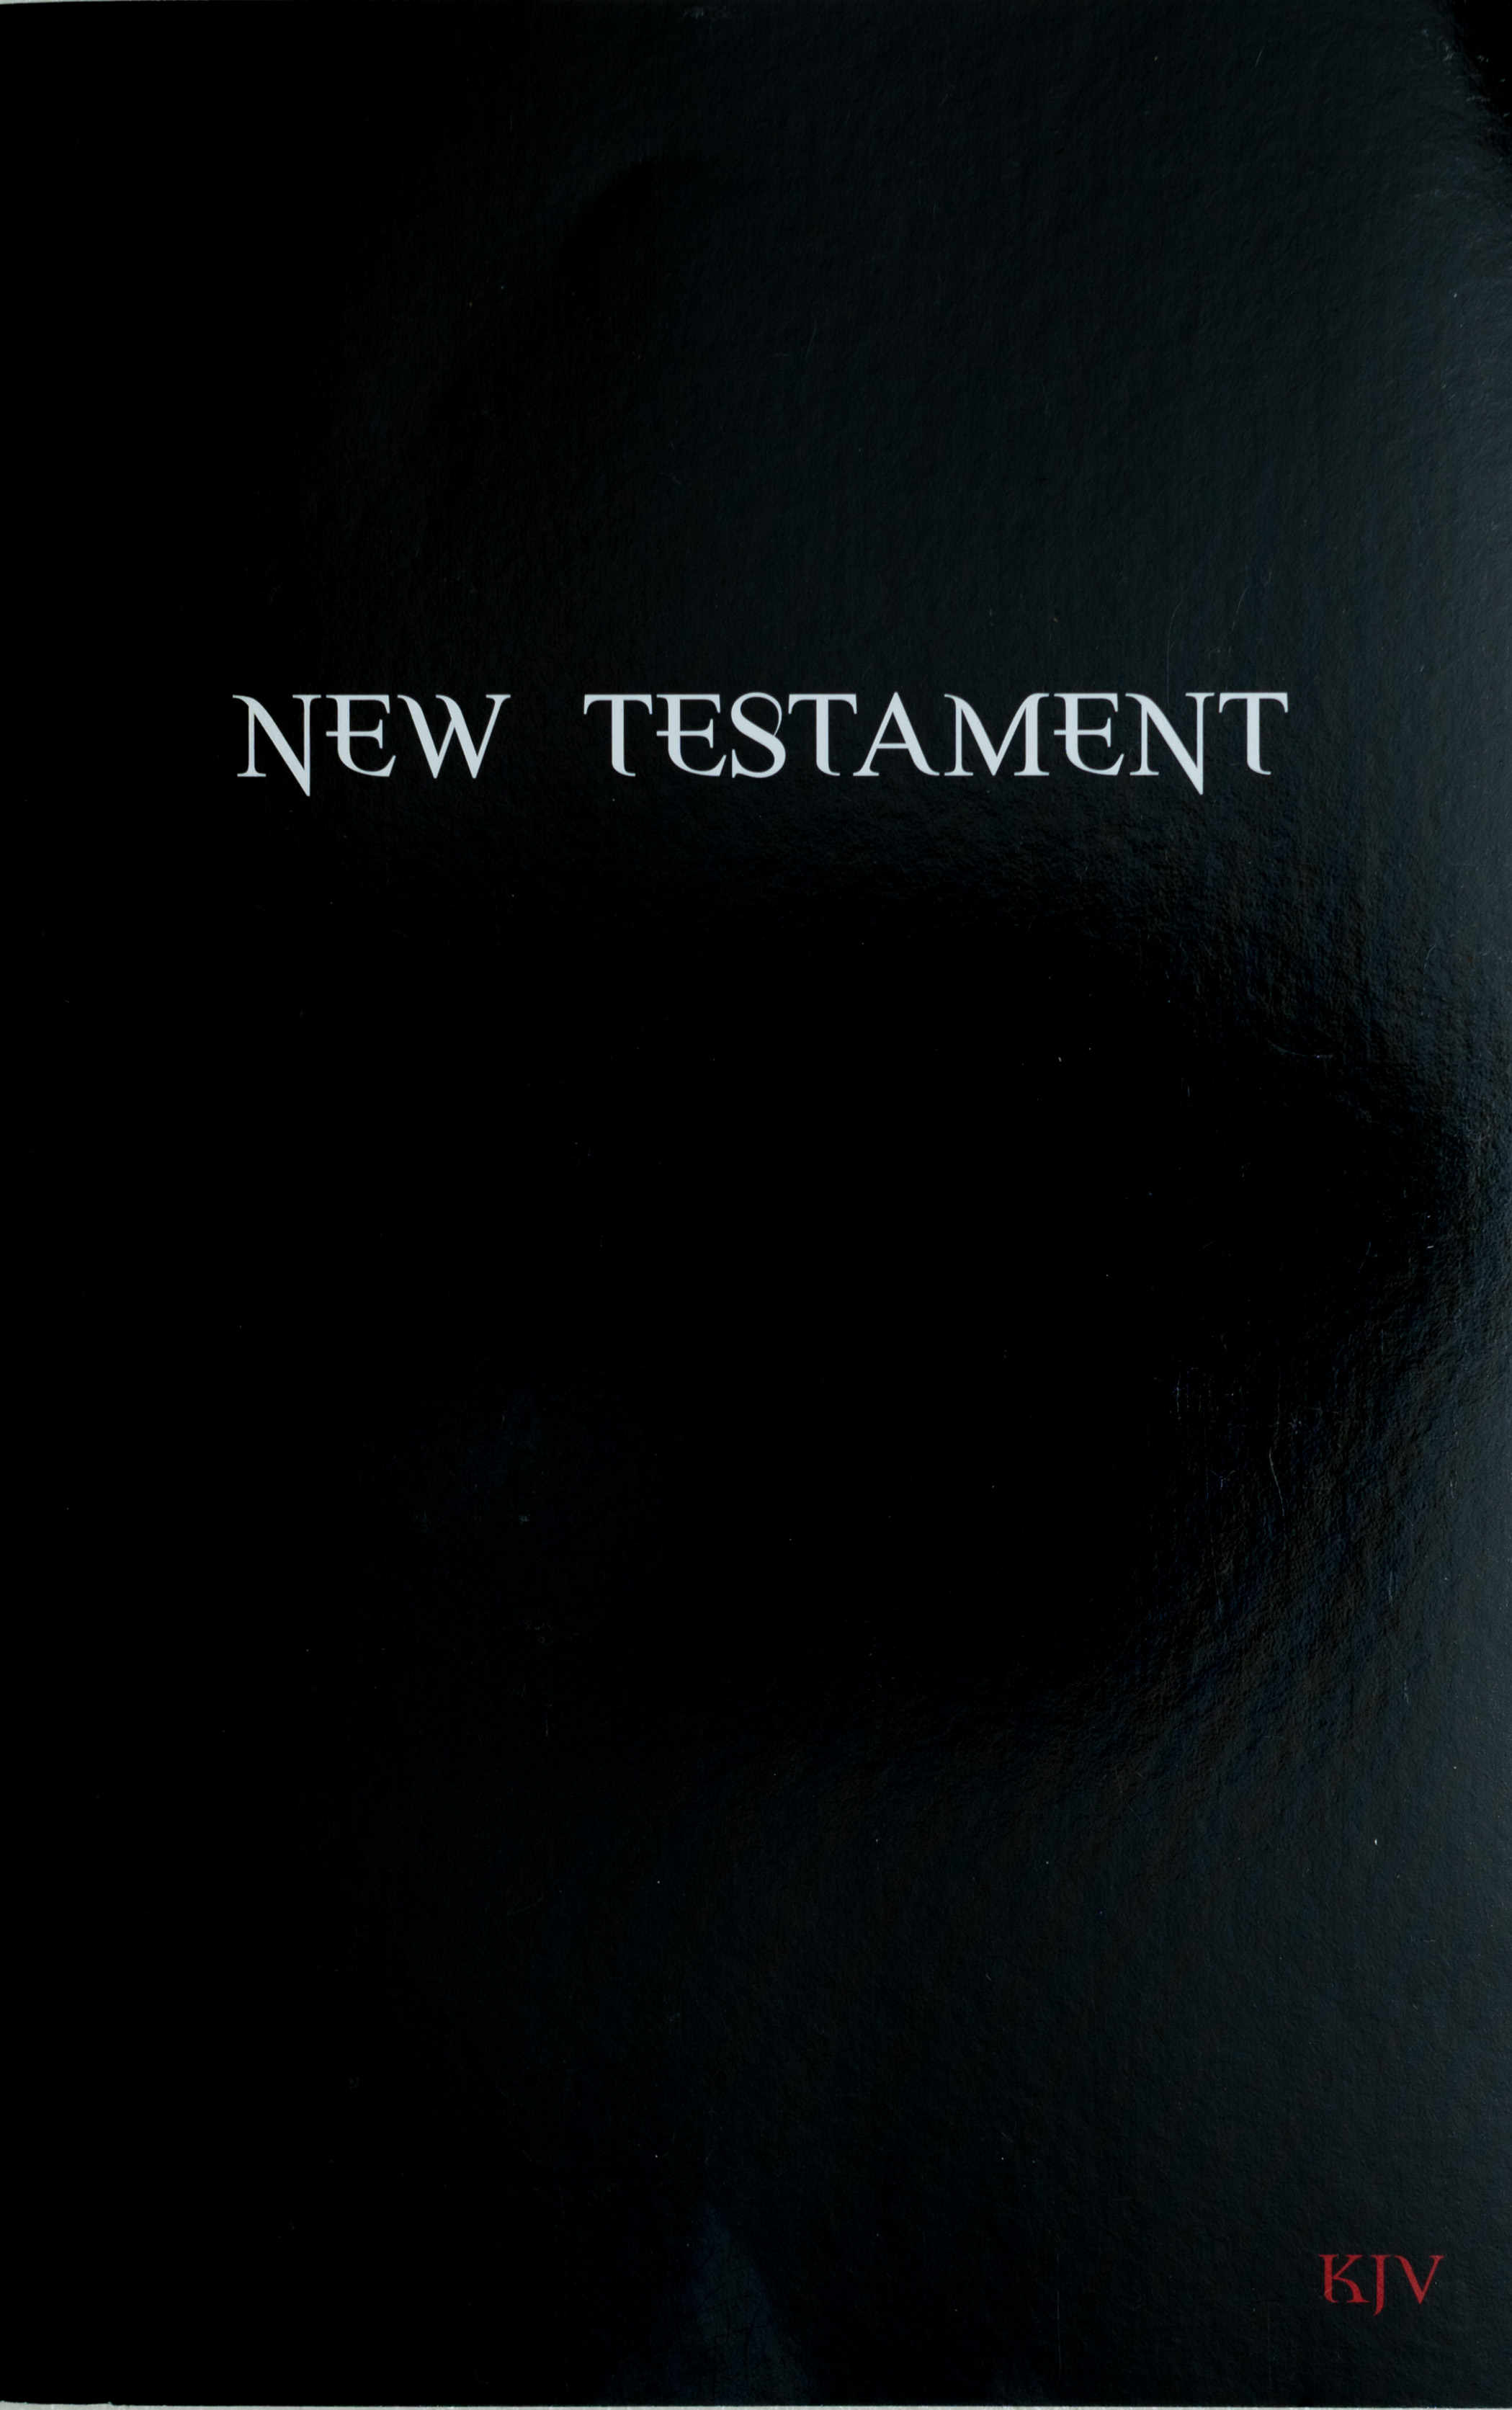 New Testament KJV      OUT OF STOCK